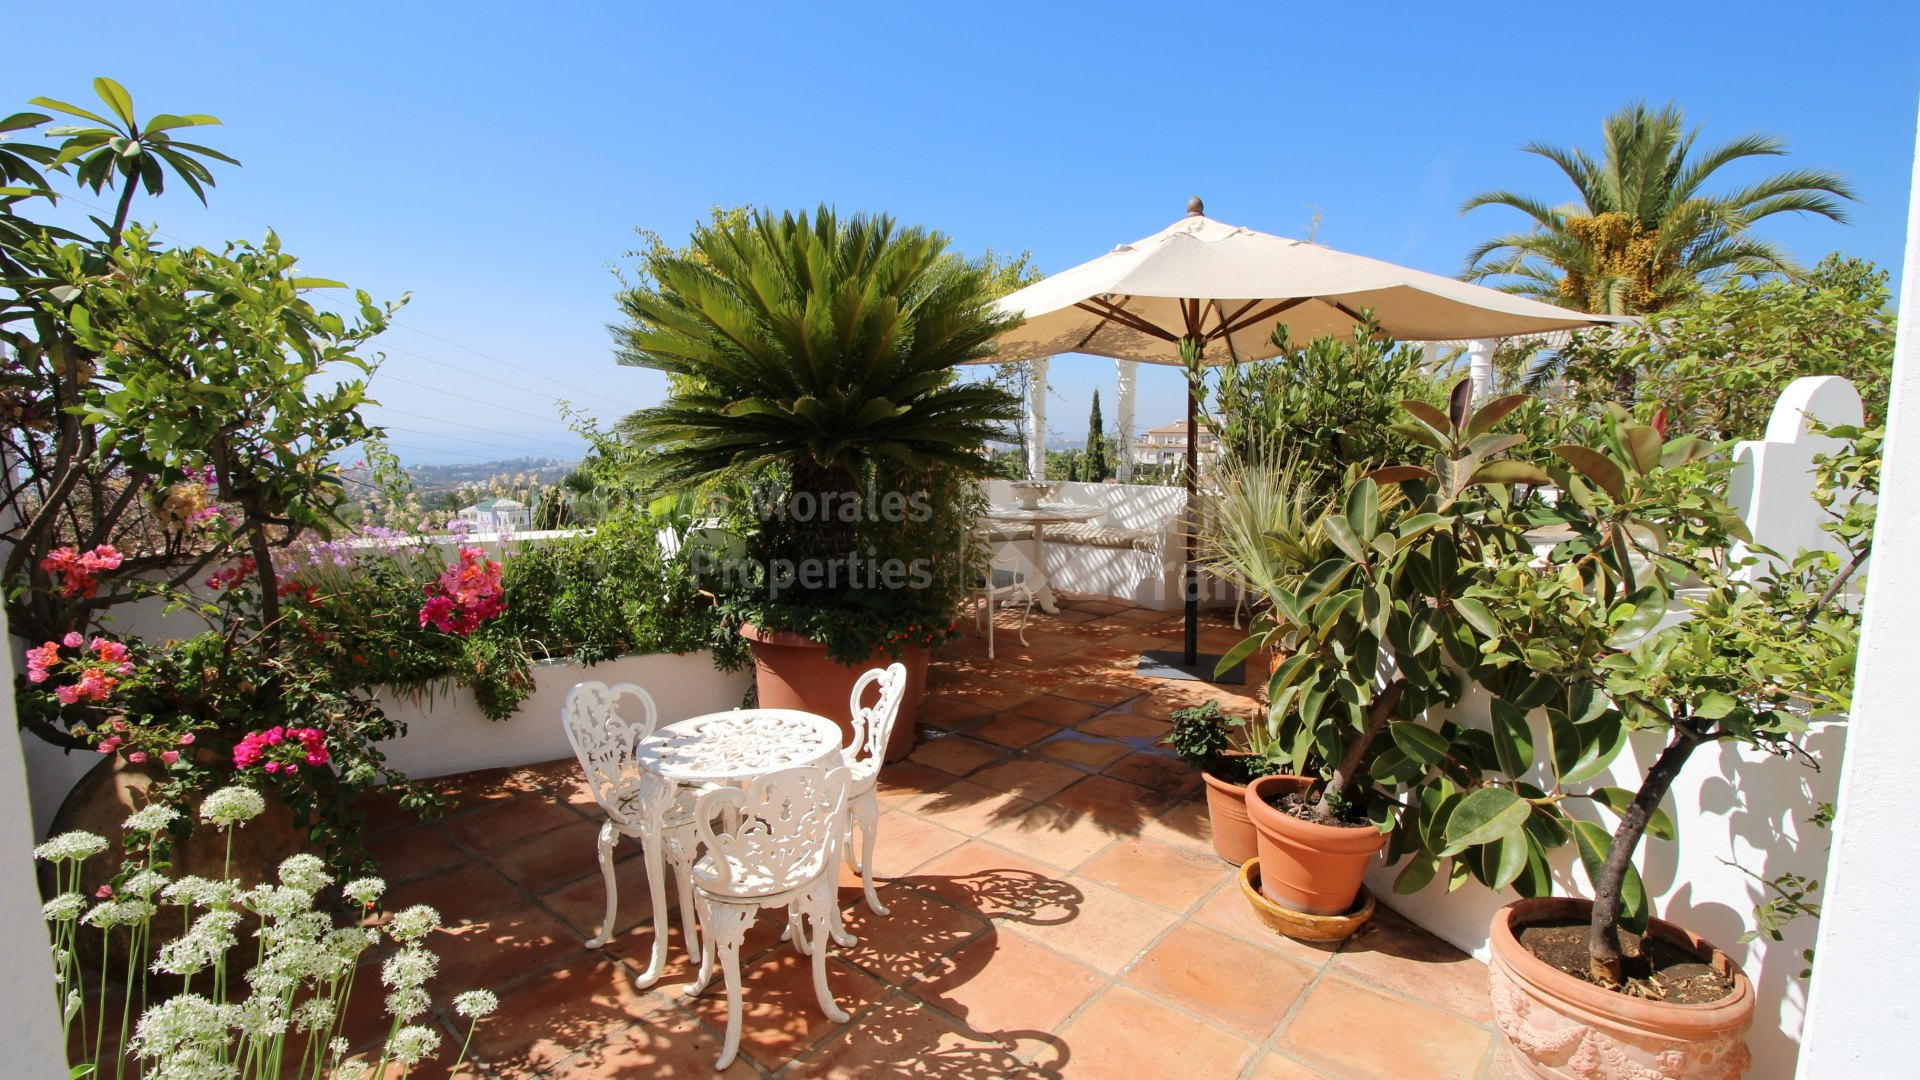 Apartment With Amazing Terrace With Sea Views Apartment For Sale